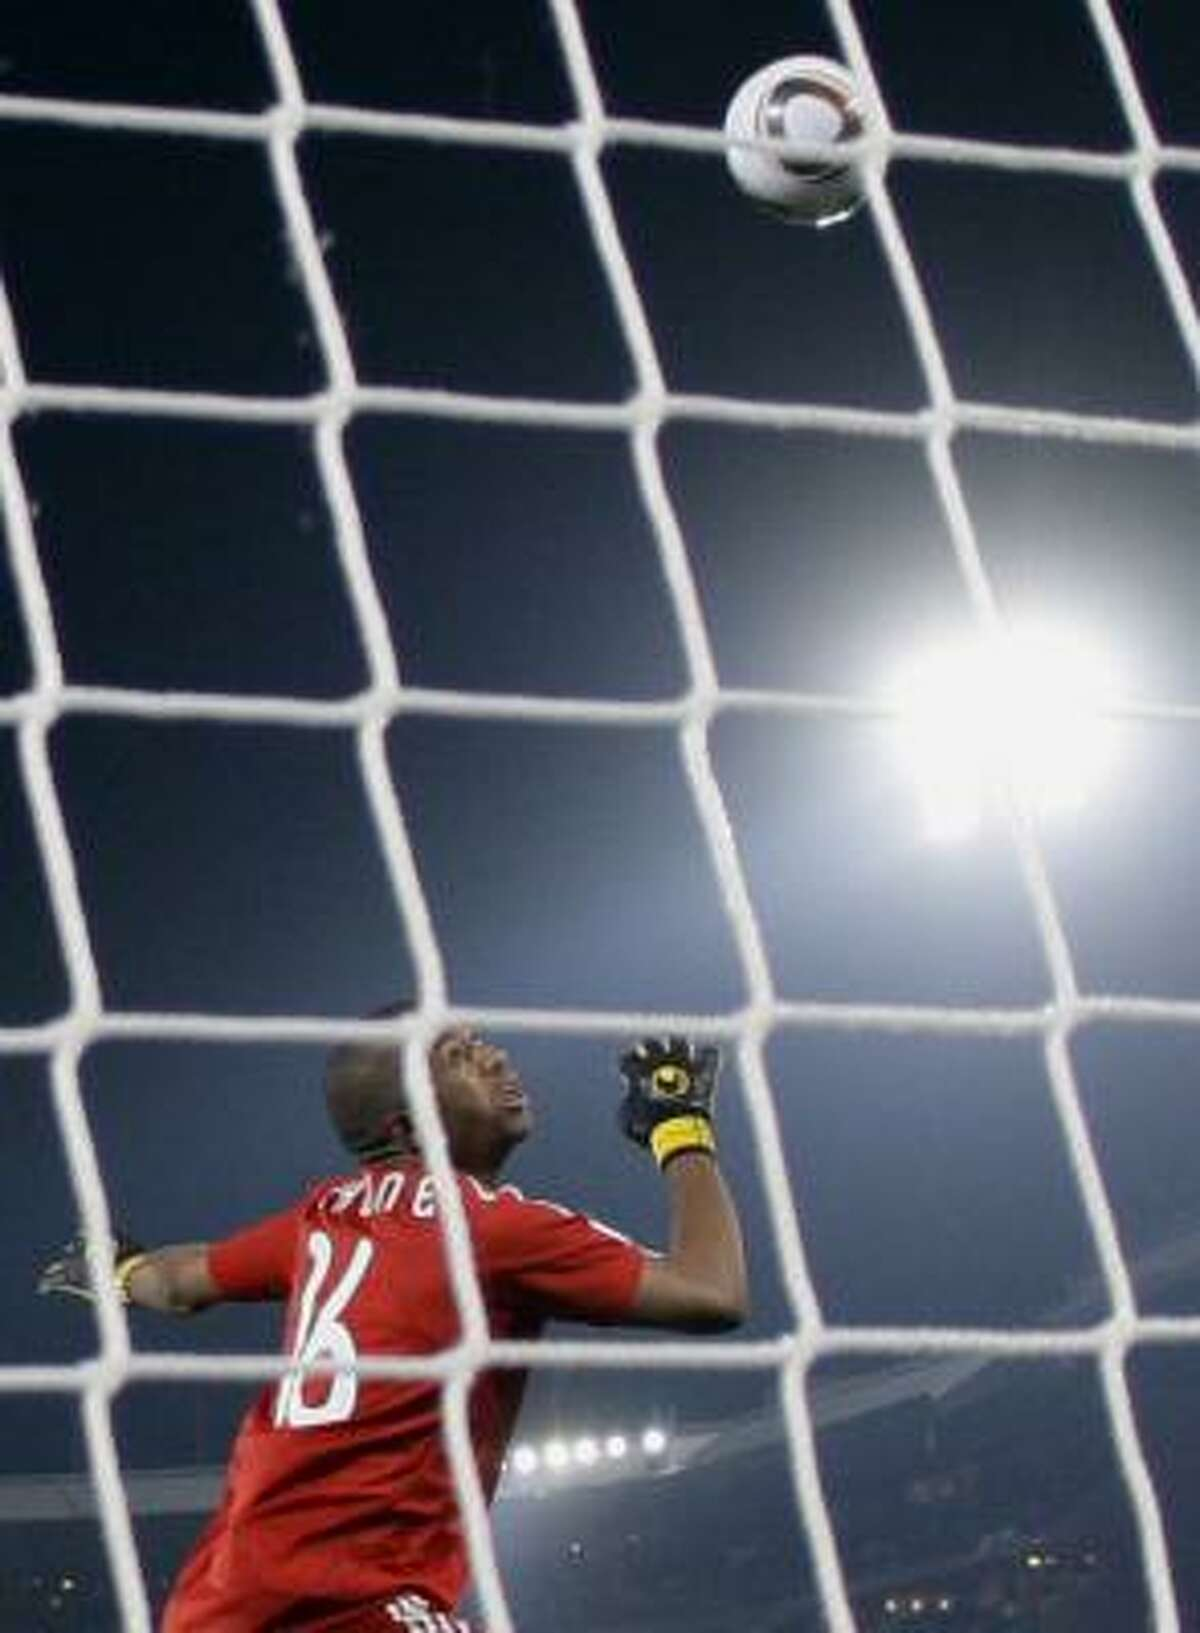 South Africa goalkeeper Itumeleng Khune looks at the ball going into the net on Forlan's first goal.